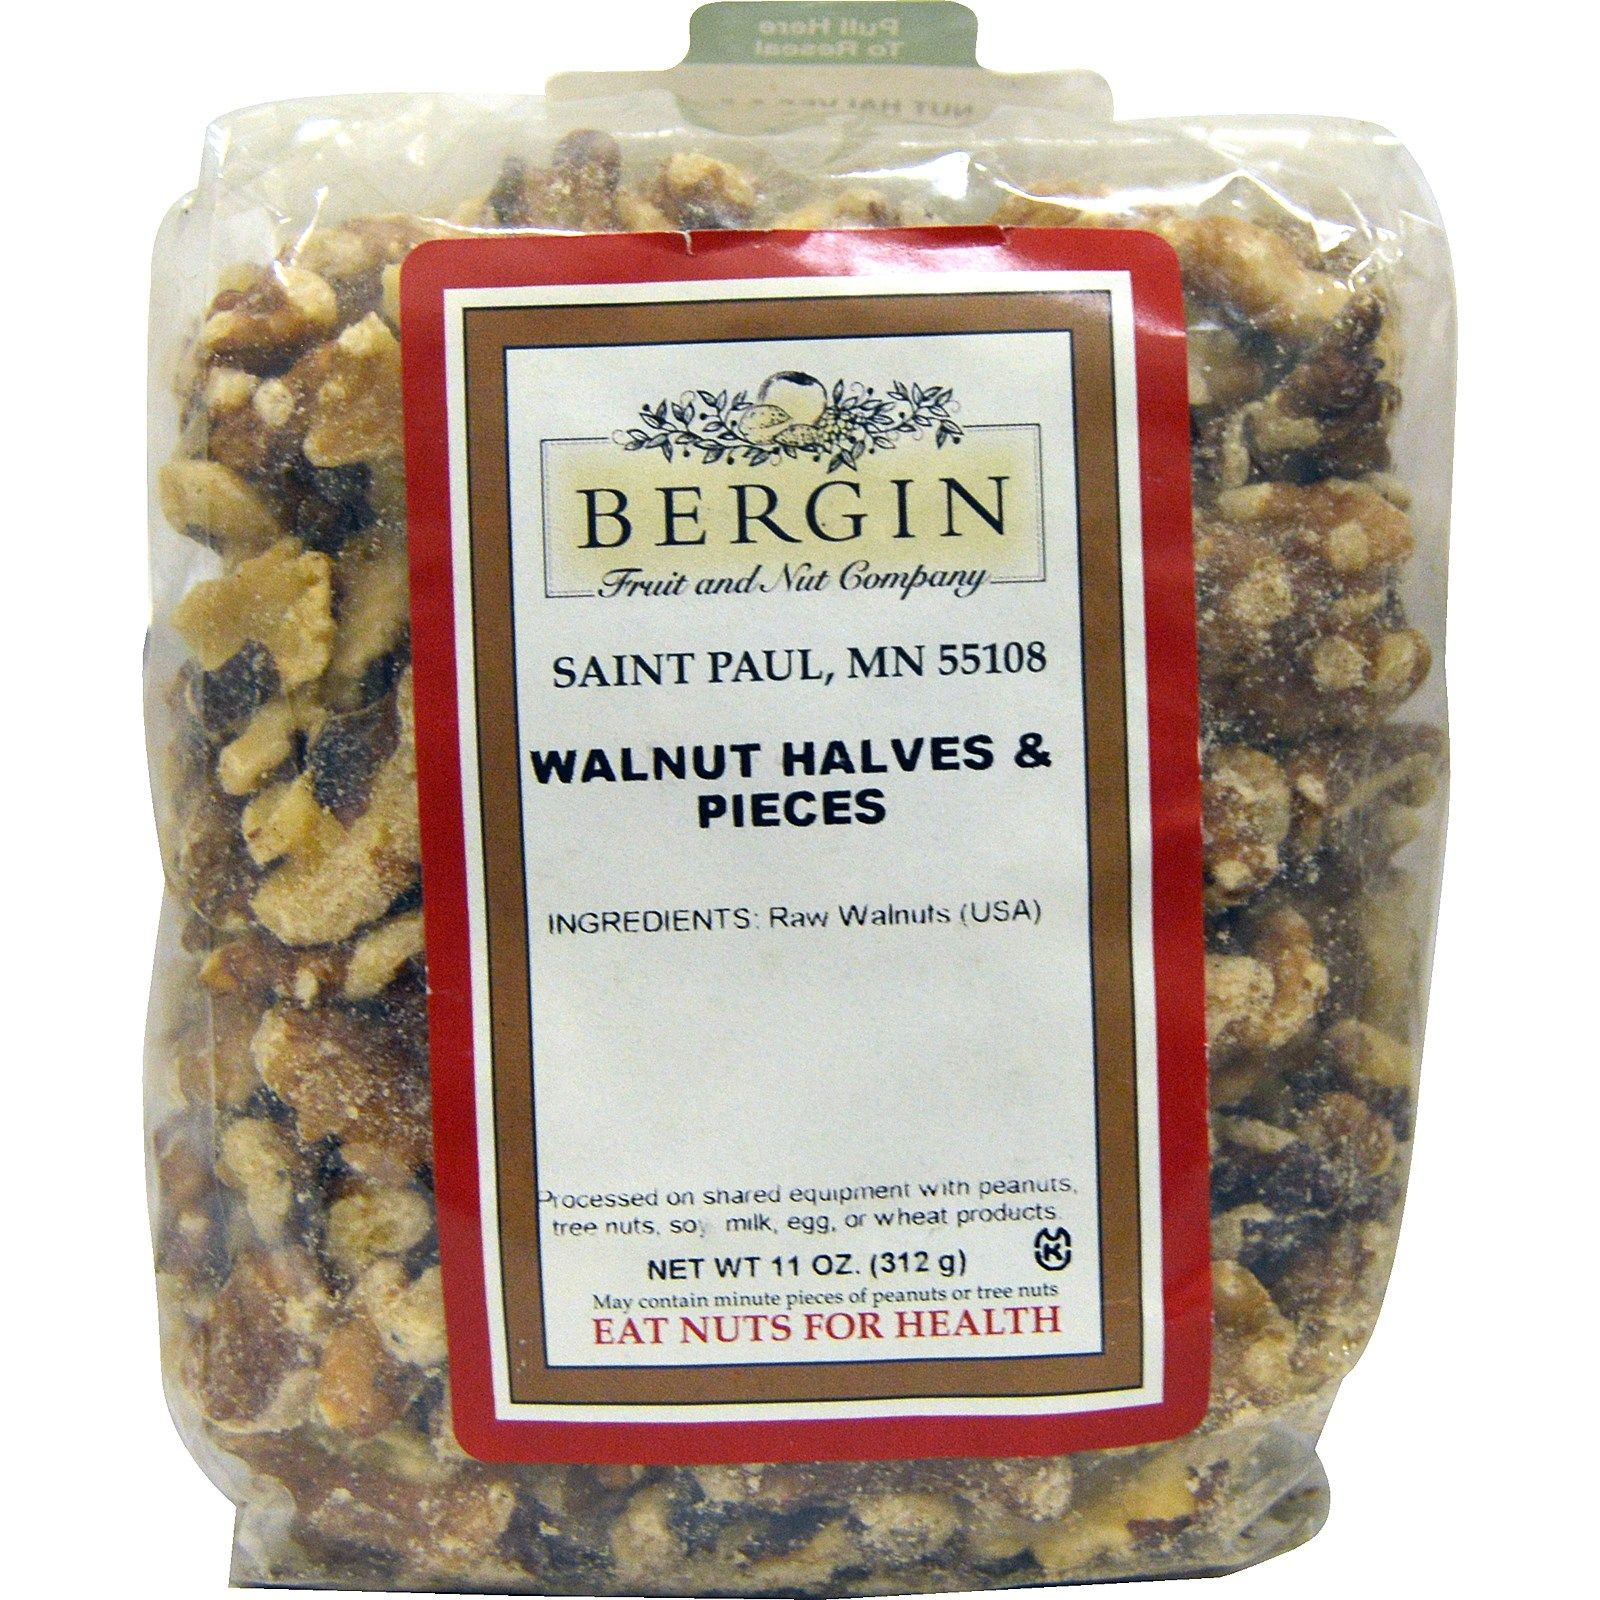 Bergin fruit and nut company walnut halves and pieces 11